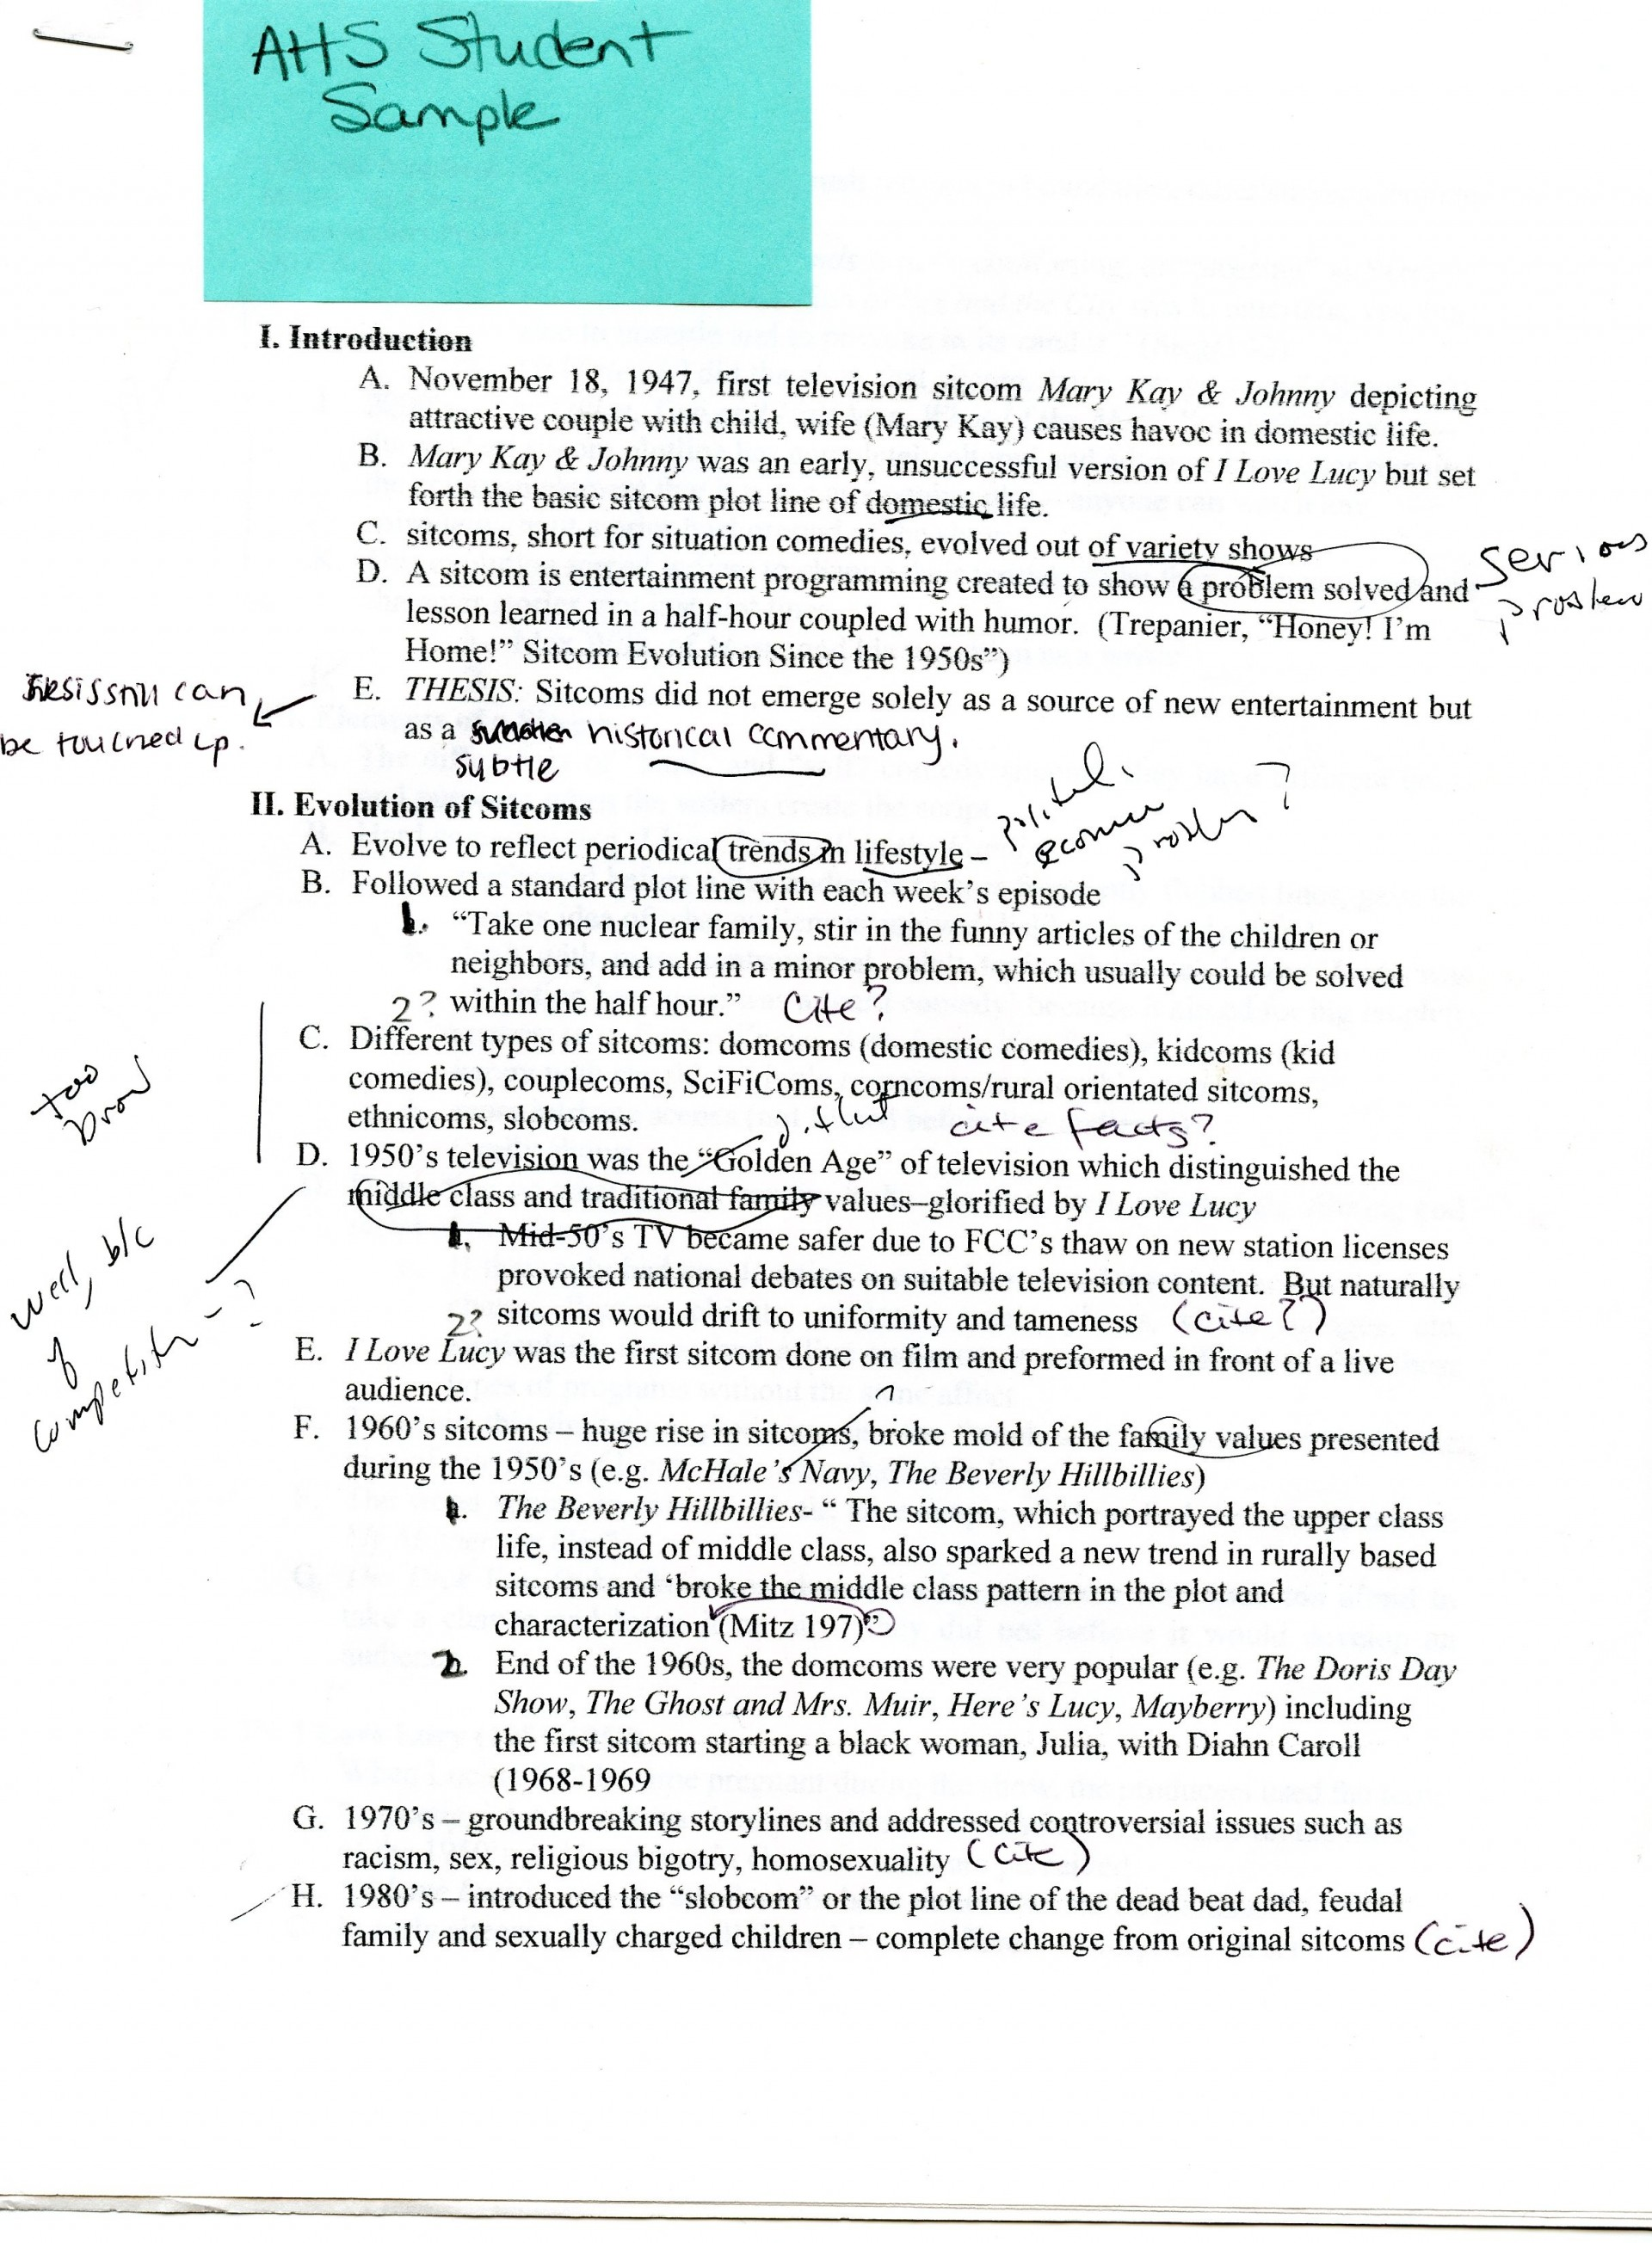 022 Purdue Essay Example Of An Mla Work Cited Beautiful University Writing Owl Formal Format Paper 1920